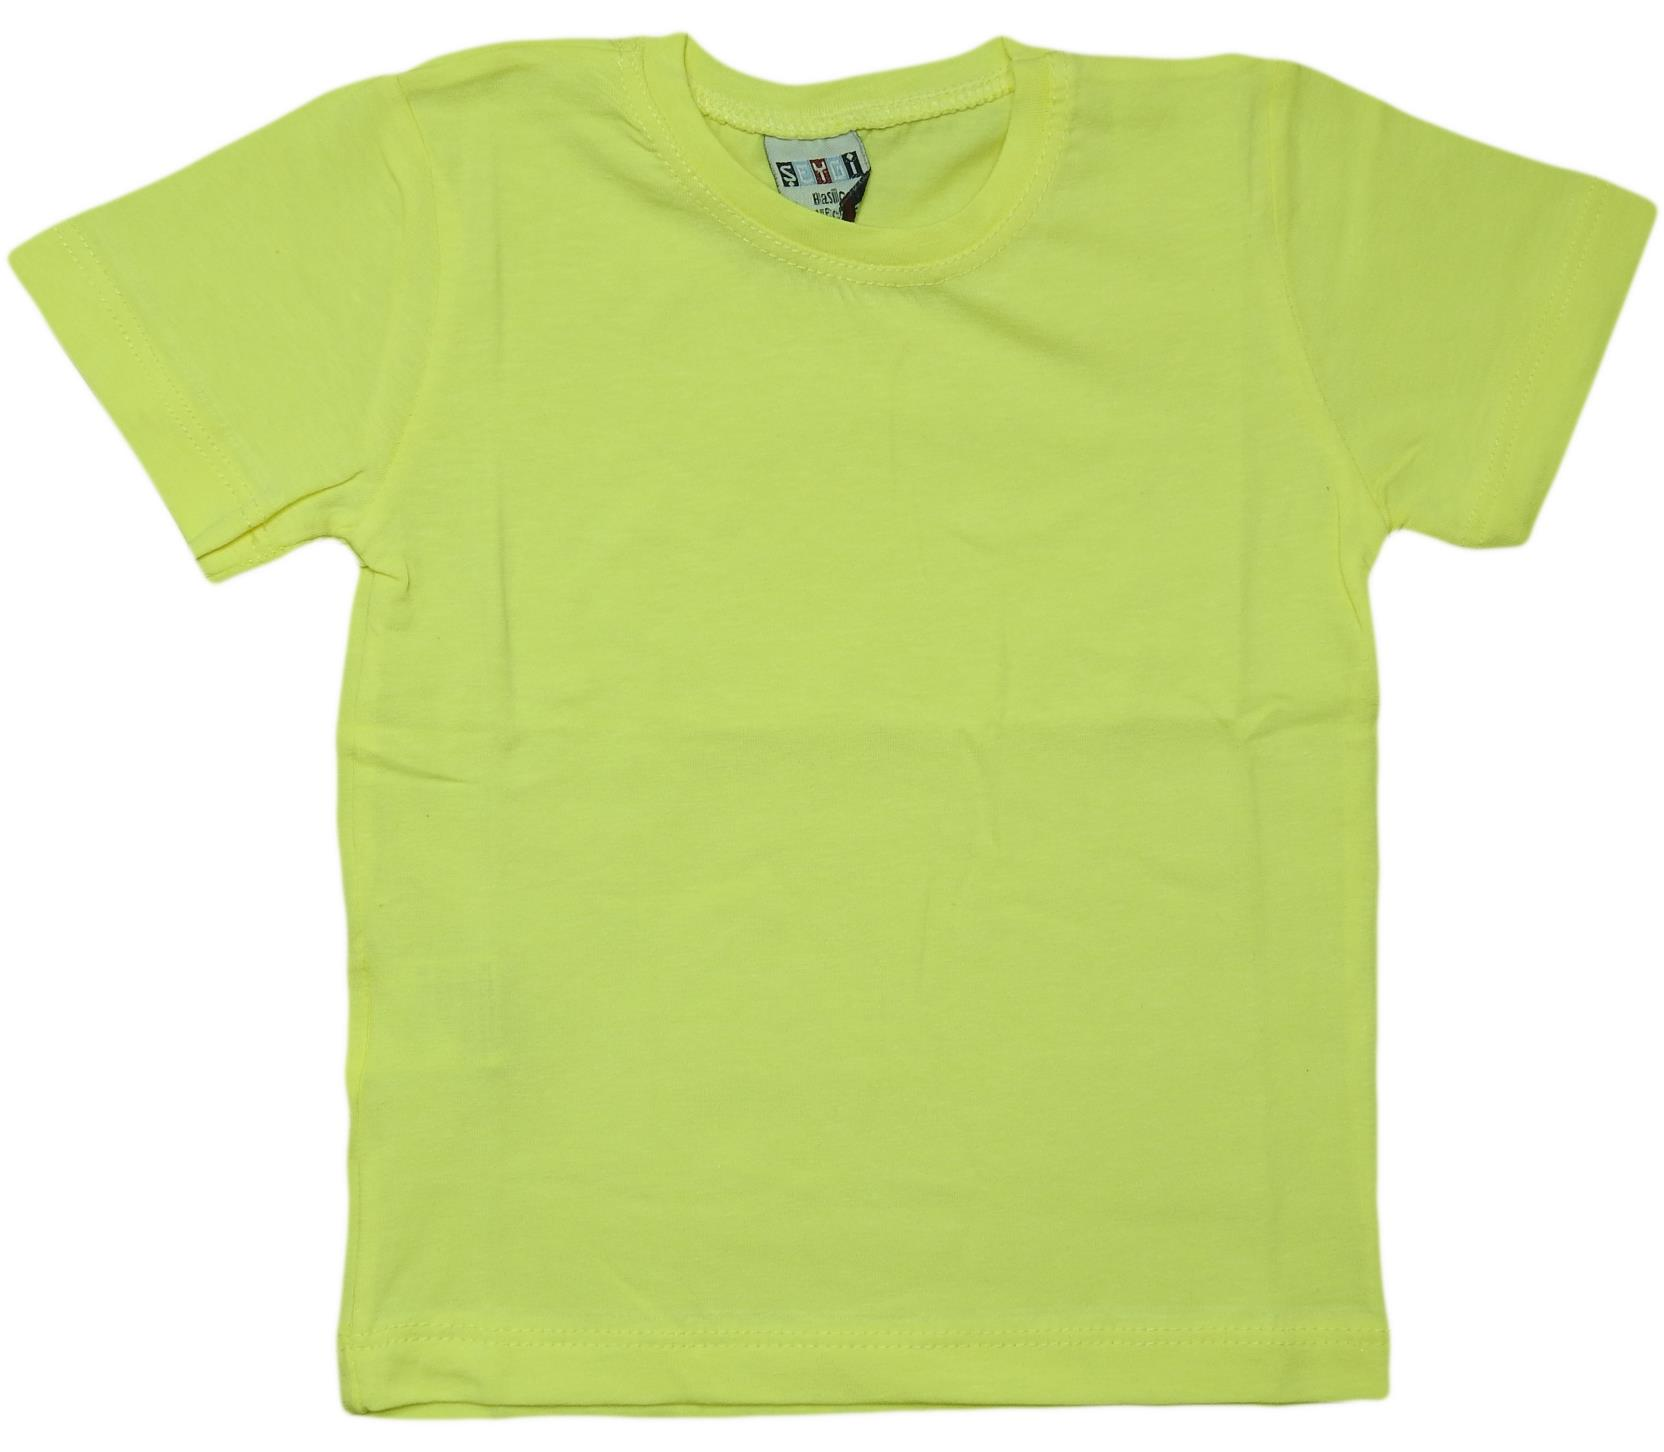 037 Wholesale quality and cheap t-shirt for kids 5-6-7-8 age